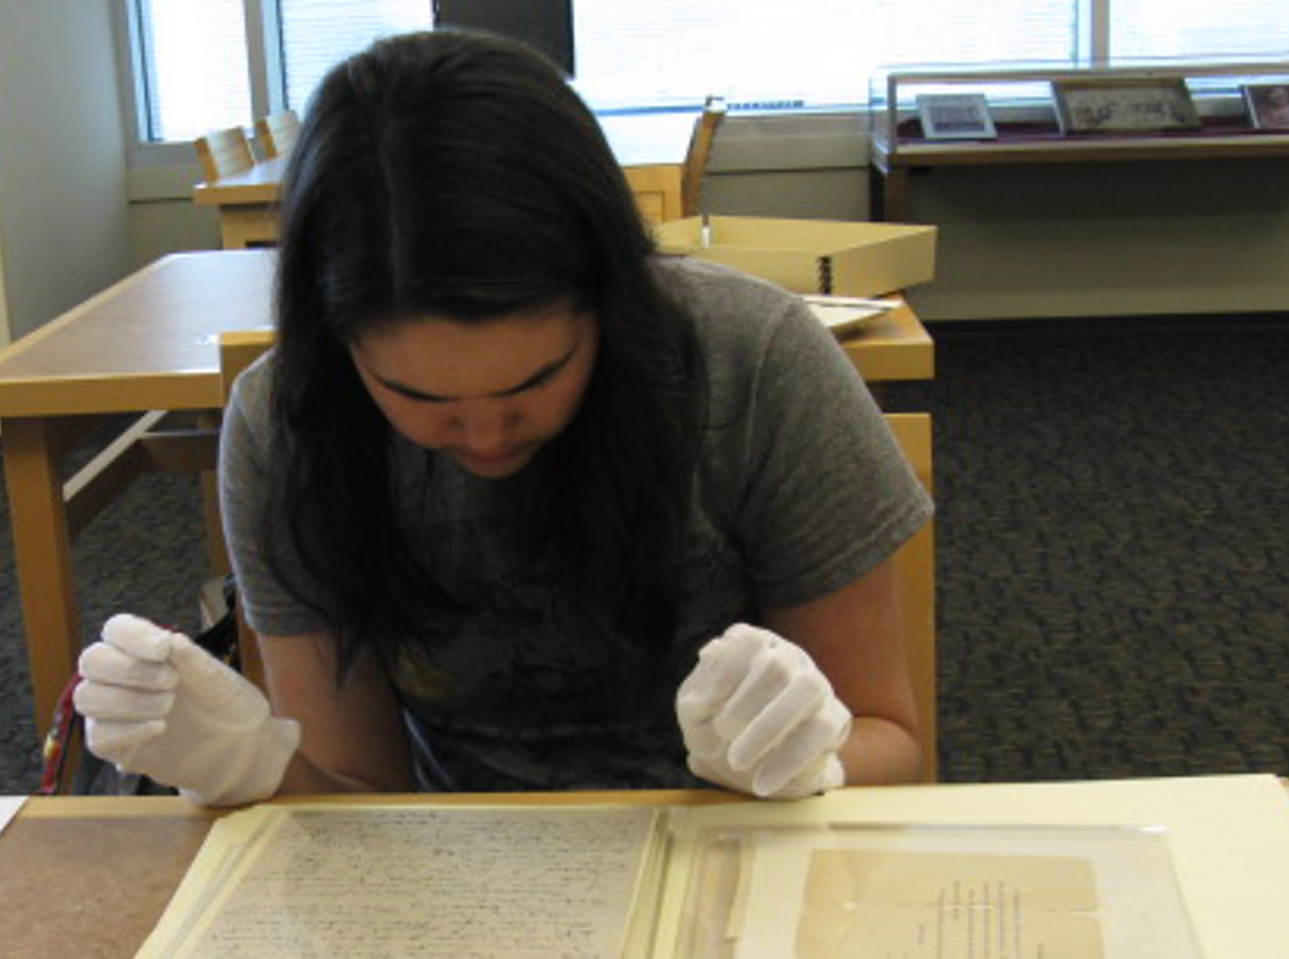 UNF student carefully handling a Special Collections item with gloves.